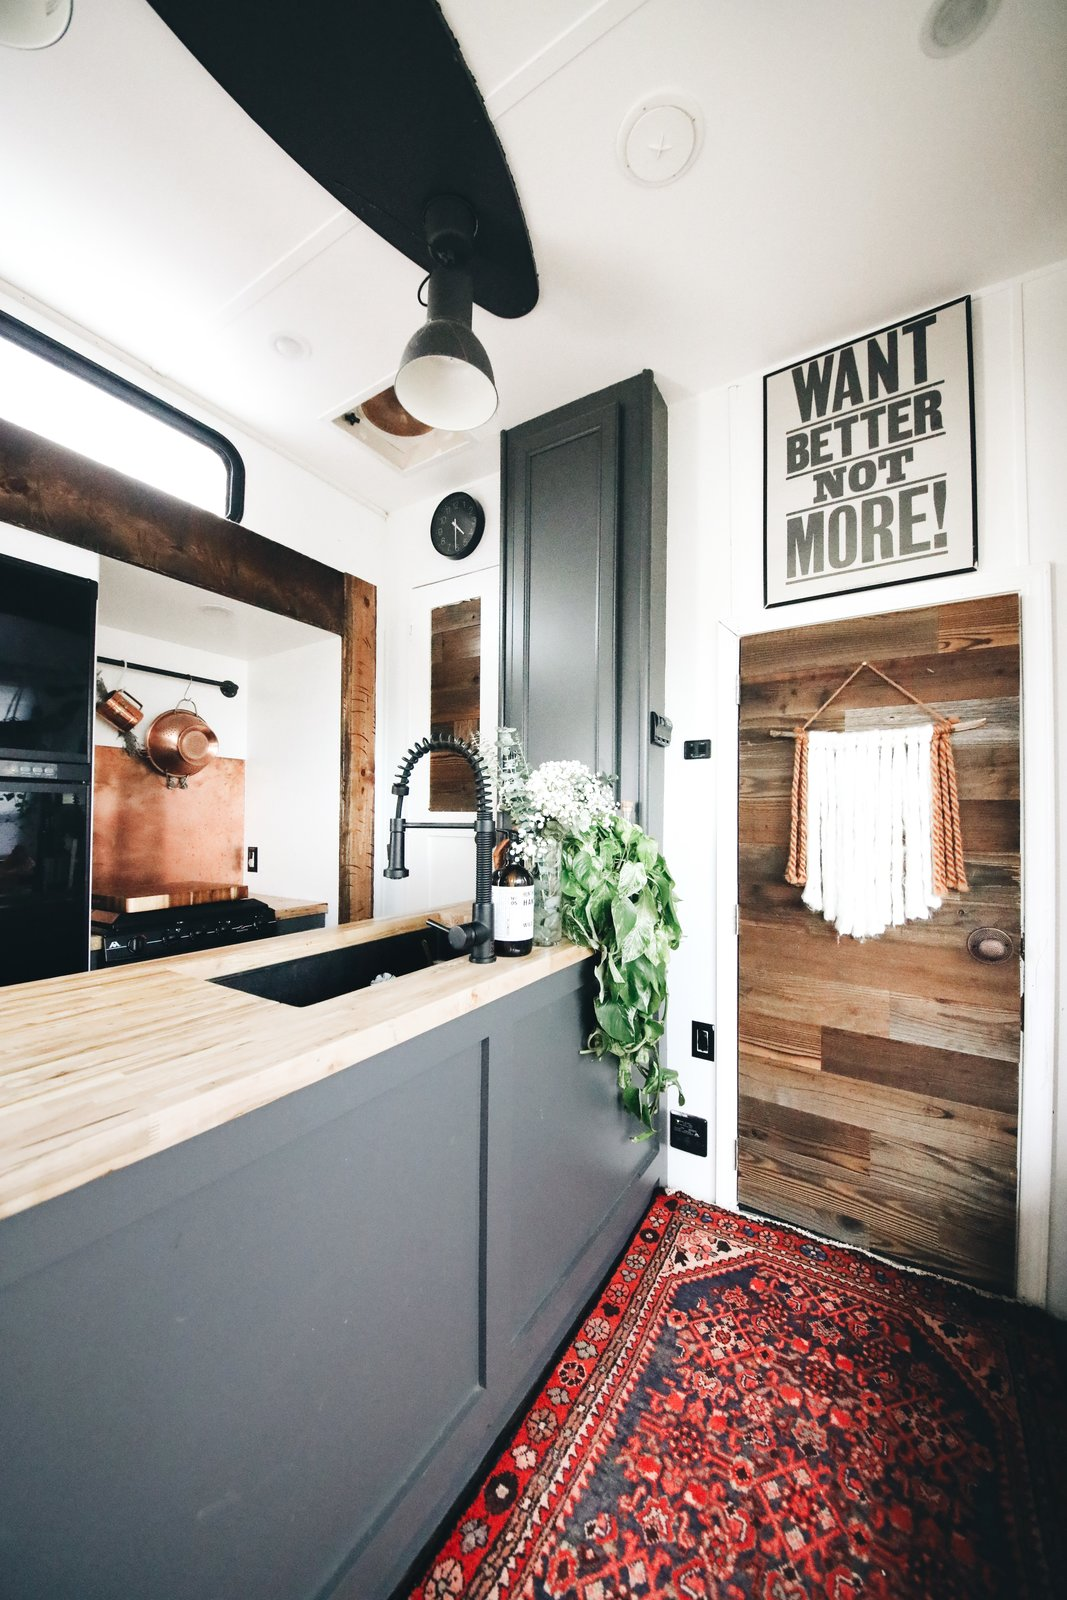 """Kitchen, Ceiling Lighting, Rug Floor, Wood Counter, and Undermount Sink """"I wanted a blank slate that was versatile so I could switch it up, and change things around as we all grew in our tiny space,"""" she says  Photos from A Couple Transform a Toy Hauler Into a Mobile Tiny Home For $6K"""